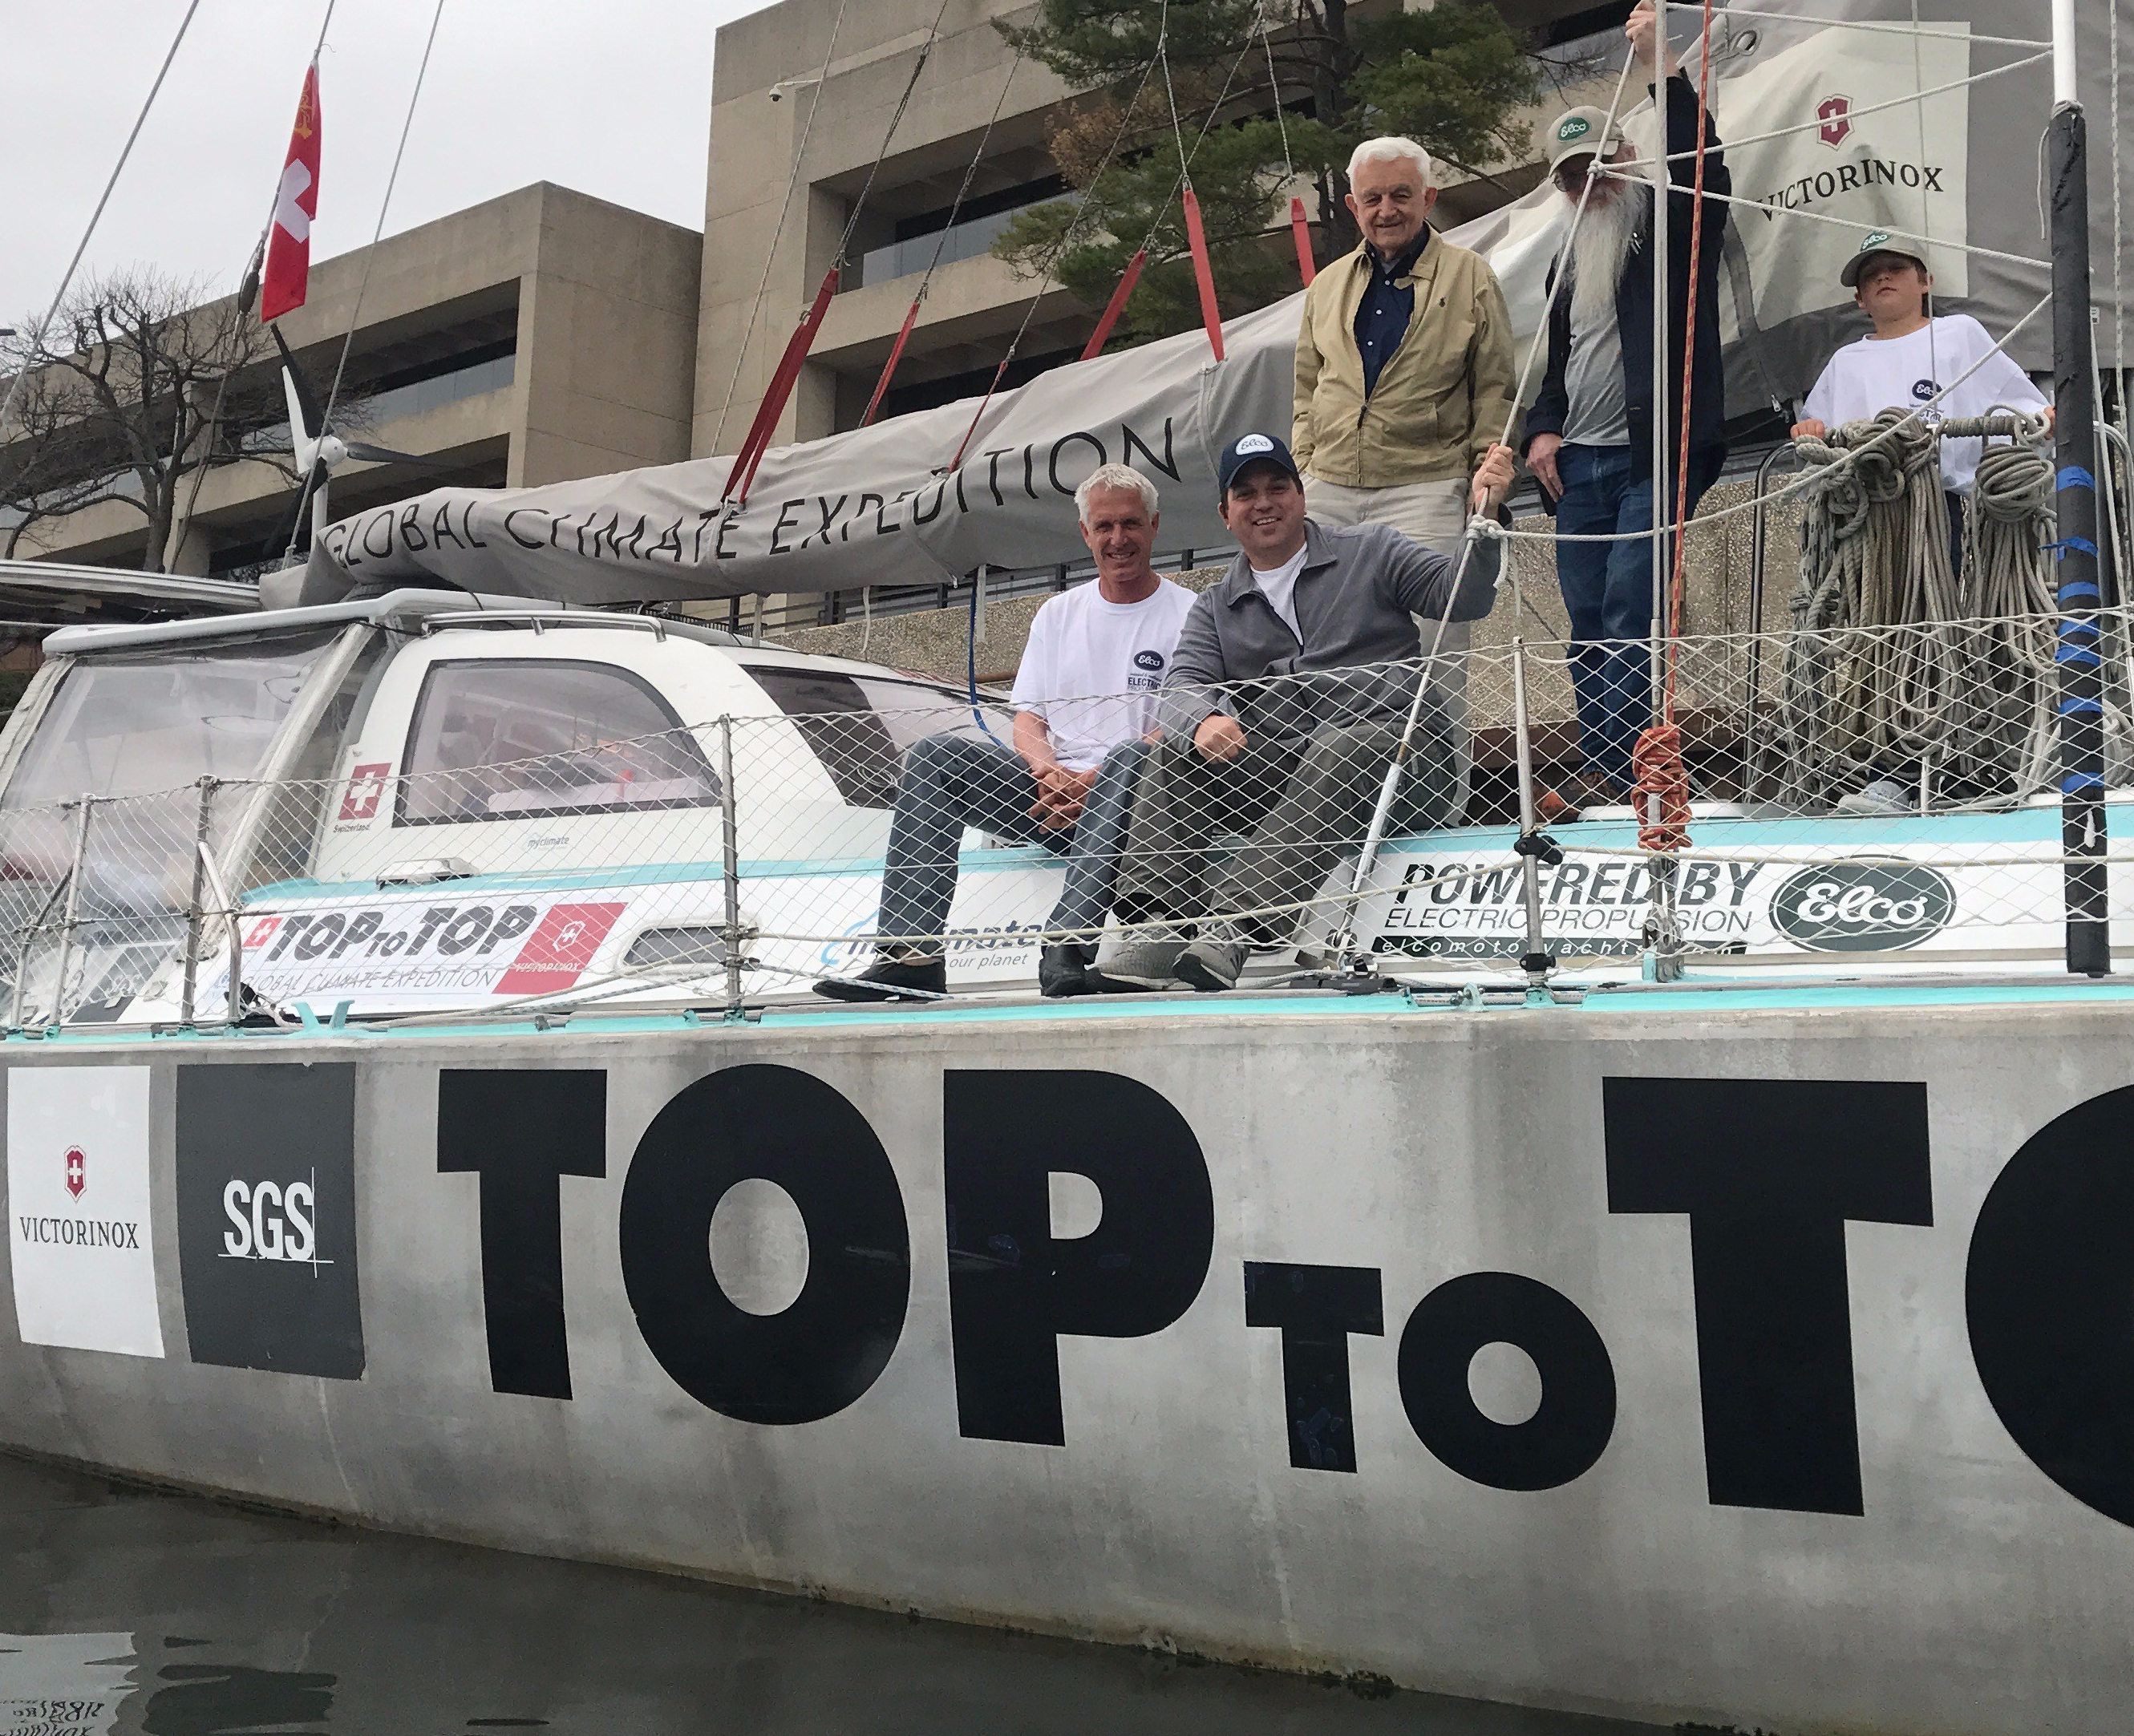 Earth Day Is Over So We Start Toptotop Global Climate Expedition